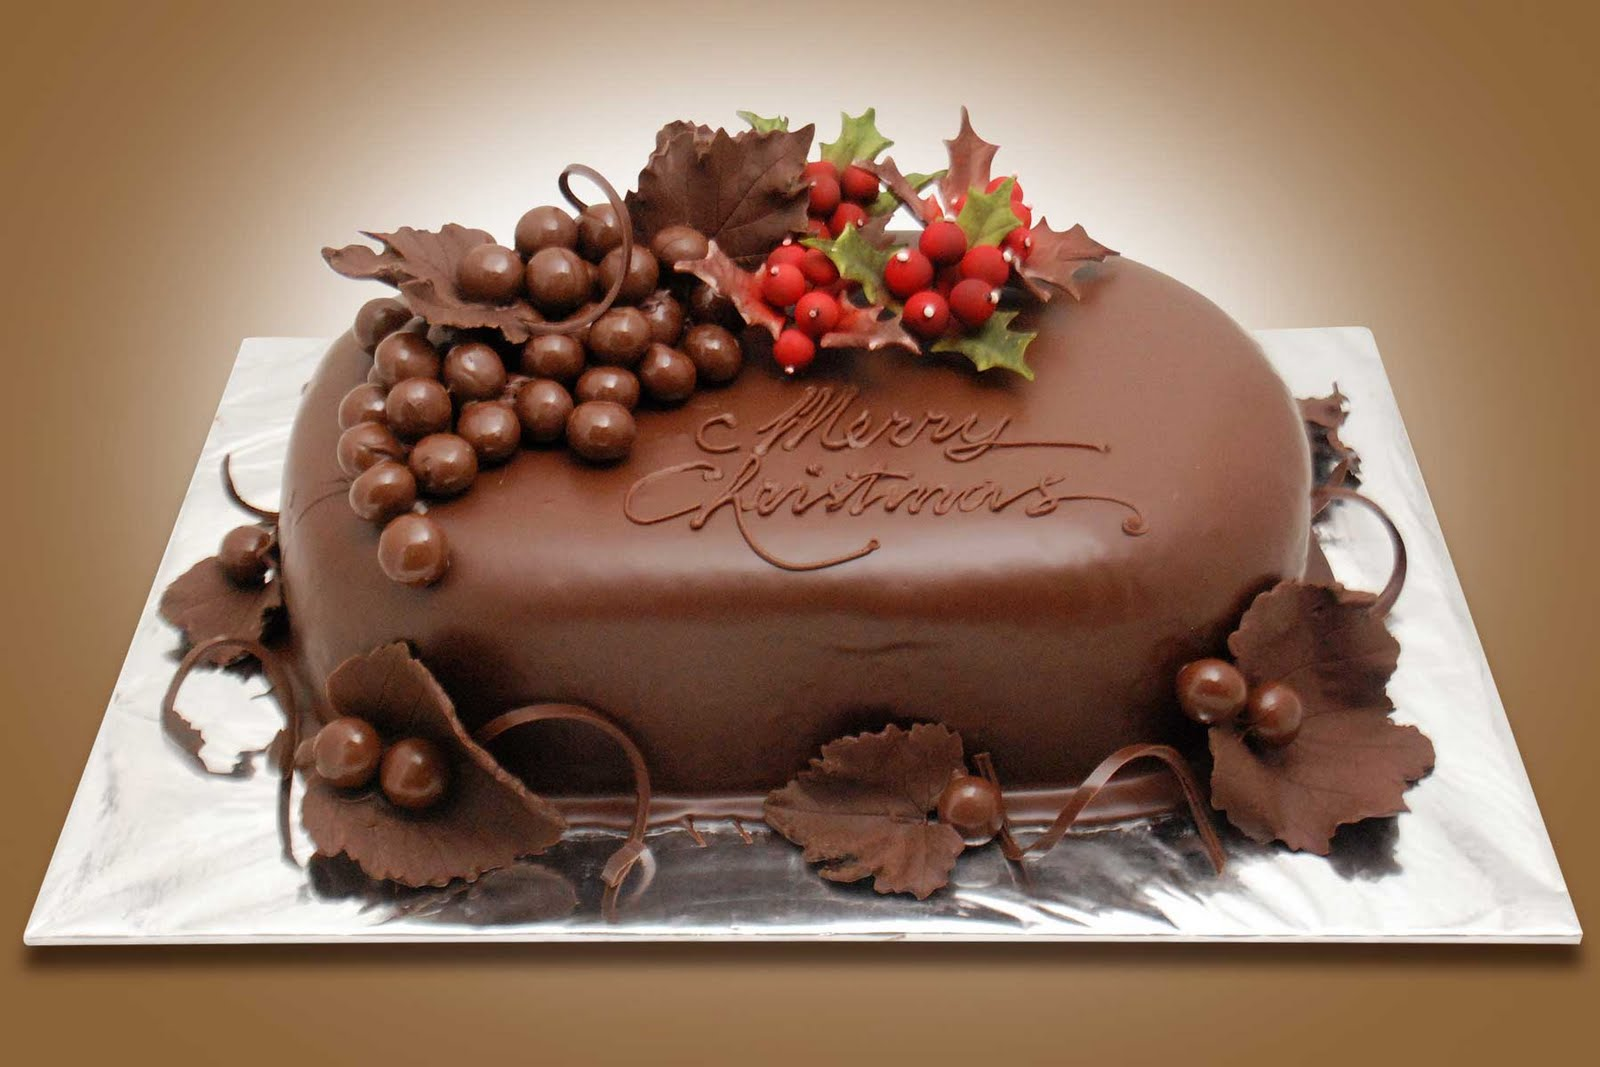 Cake Sculpture Artist : 1000+ images about Chocolate Cakes & Pastries on Pinterest ...